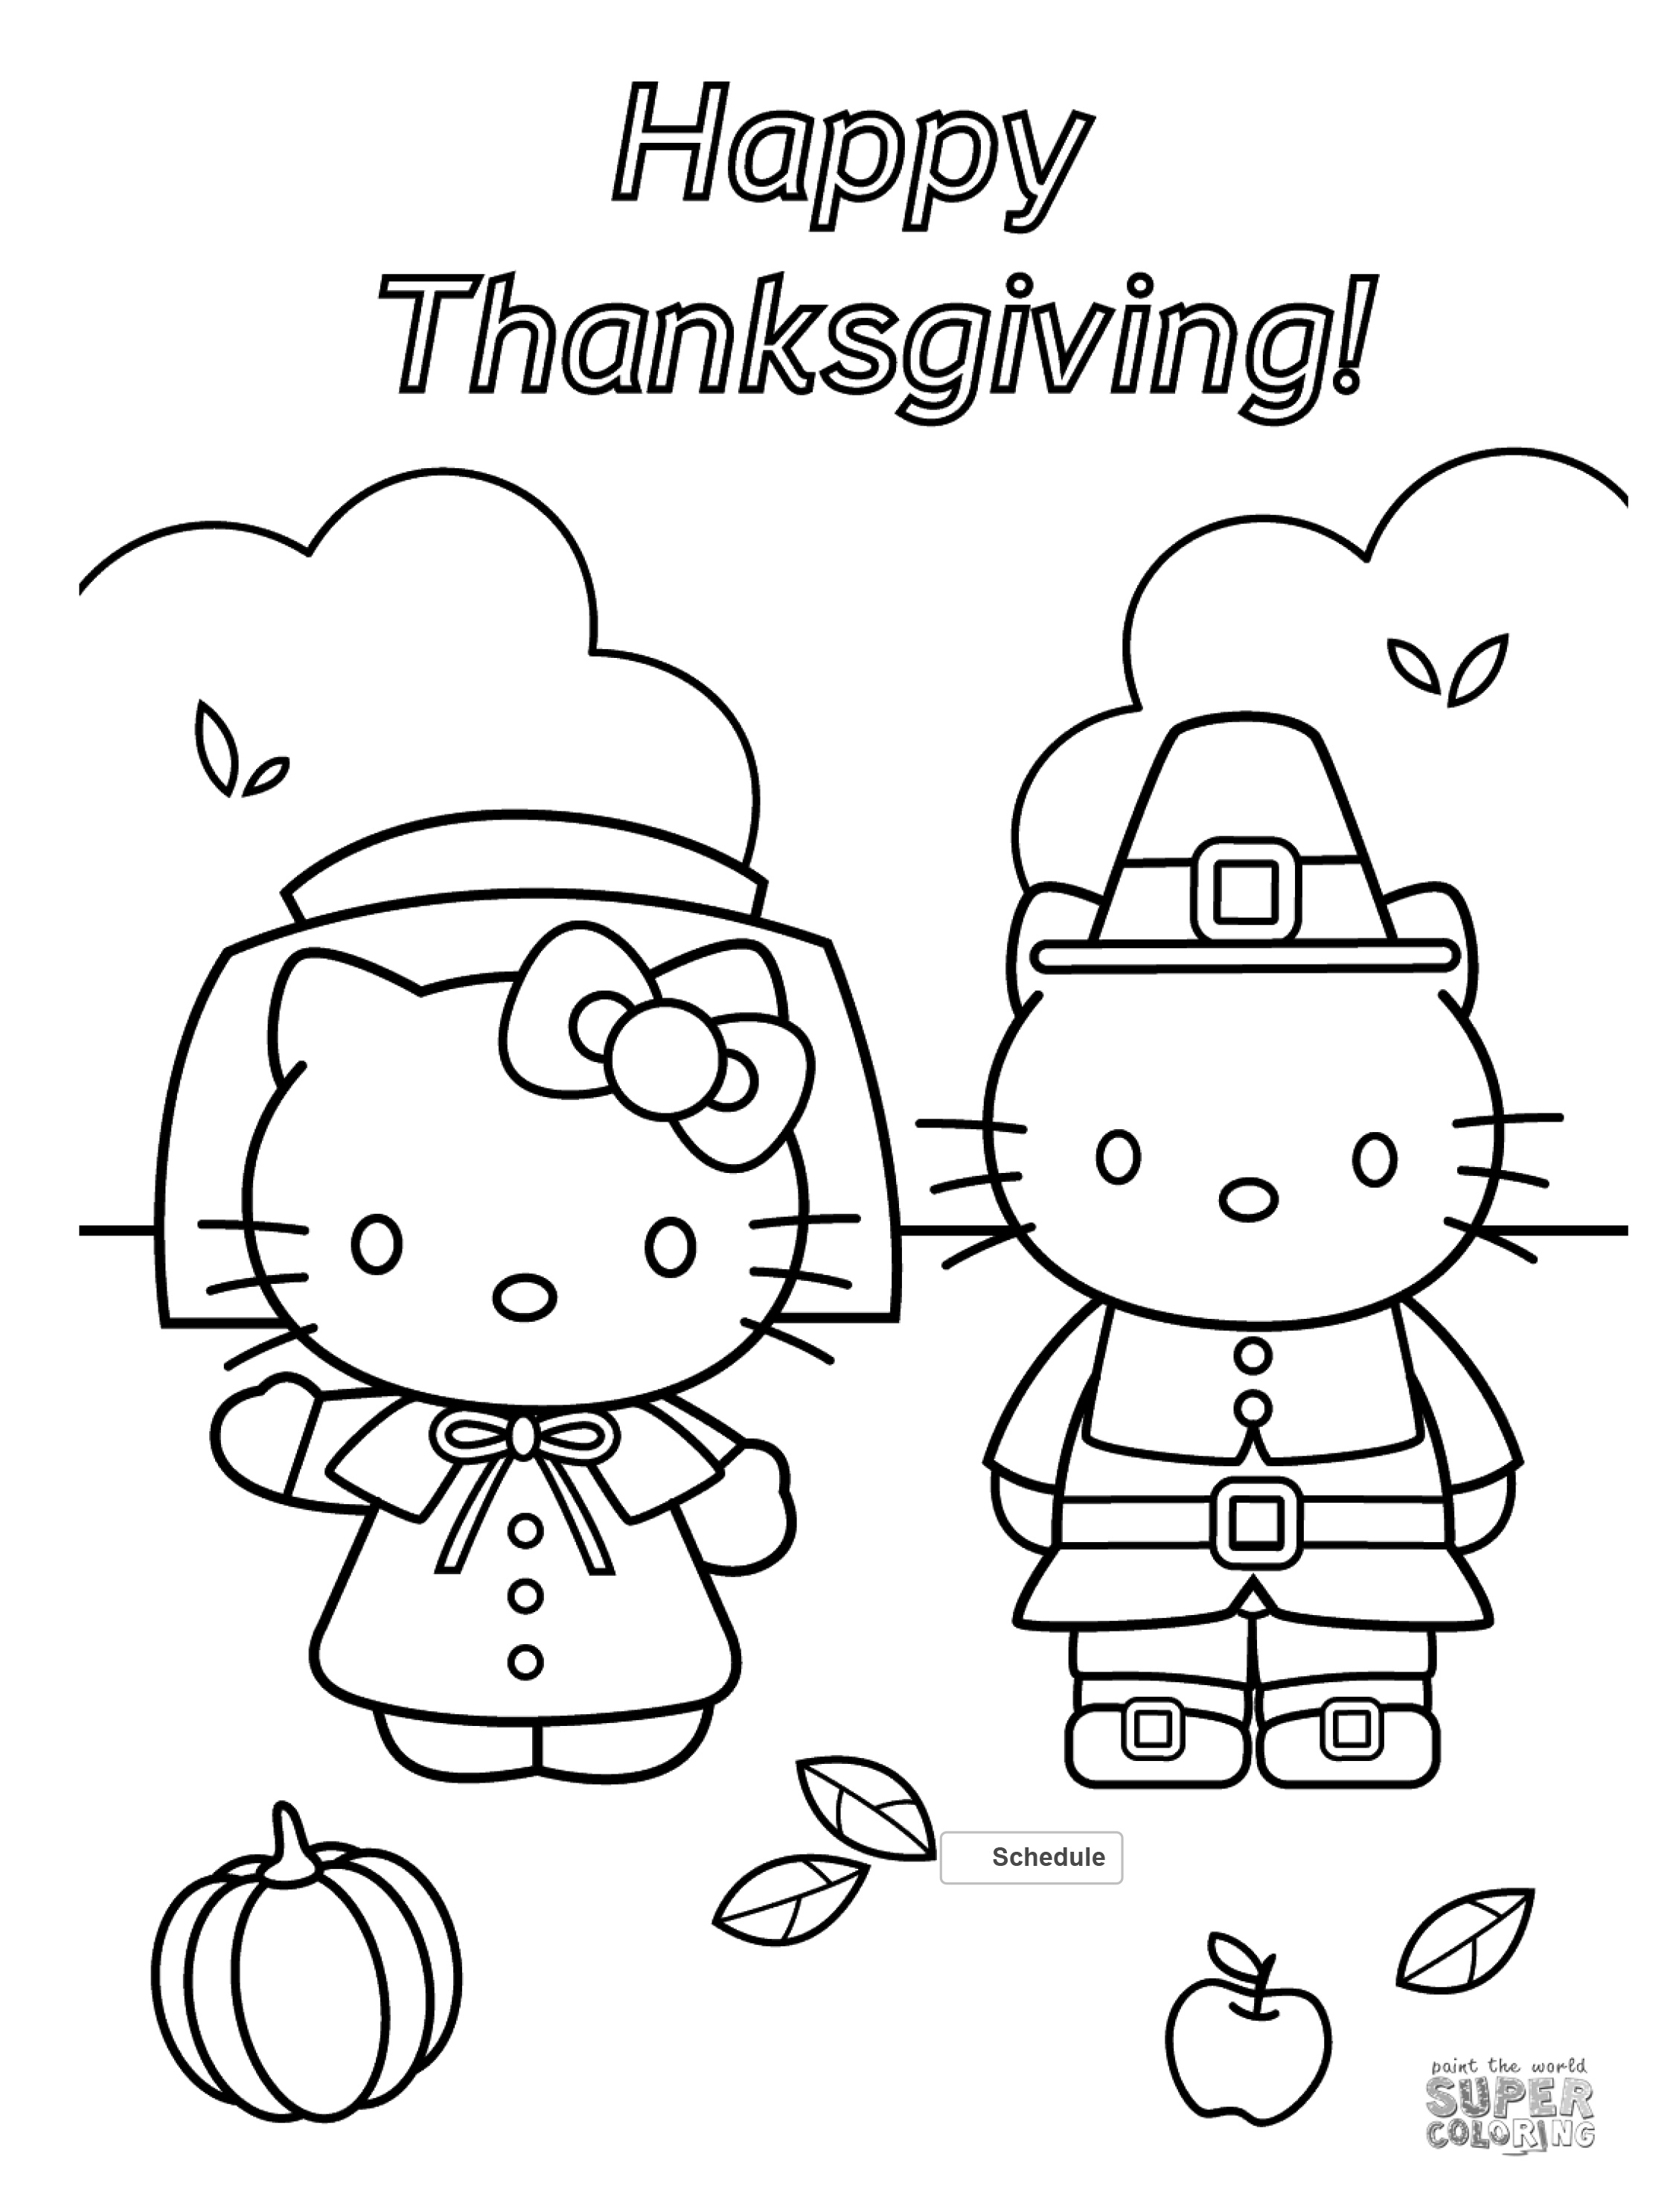 Get this pretty hand lettered so grateful thanksgiving coloring sheet over at printable crush